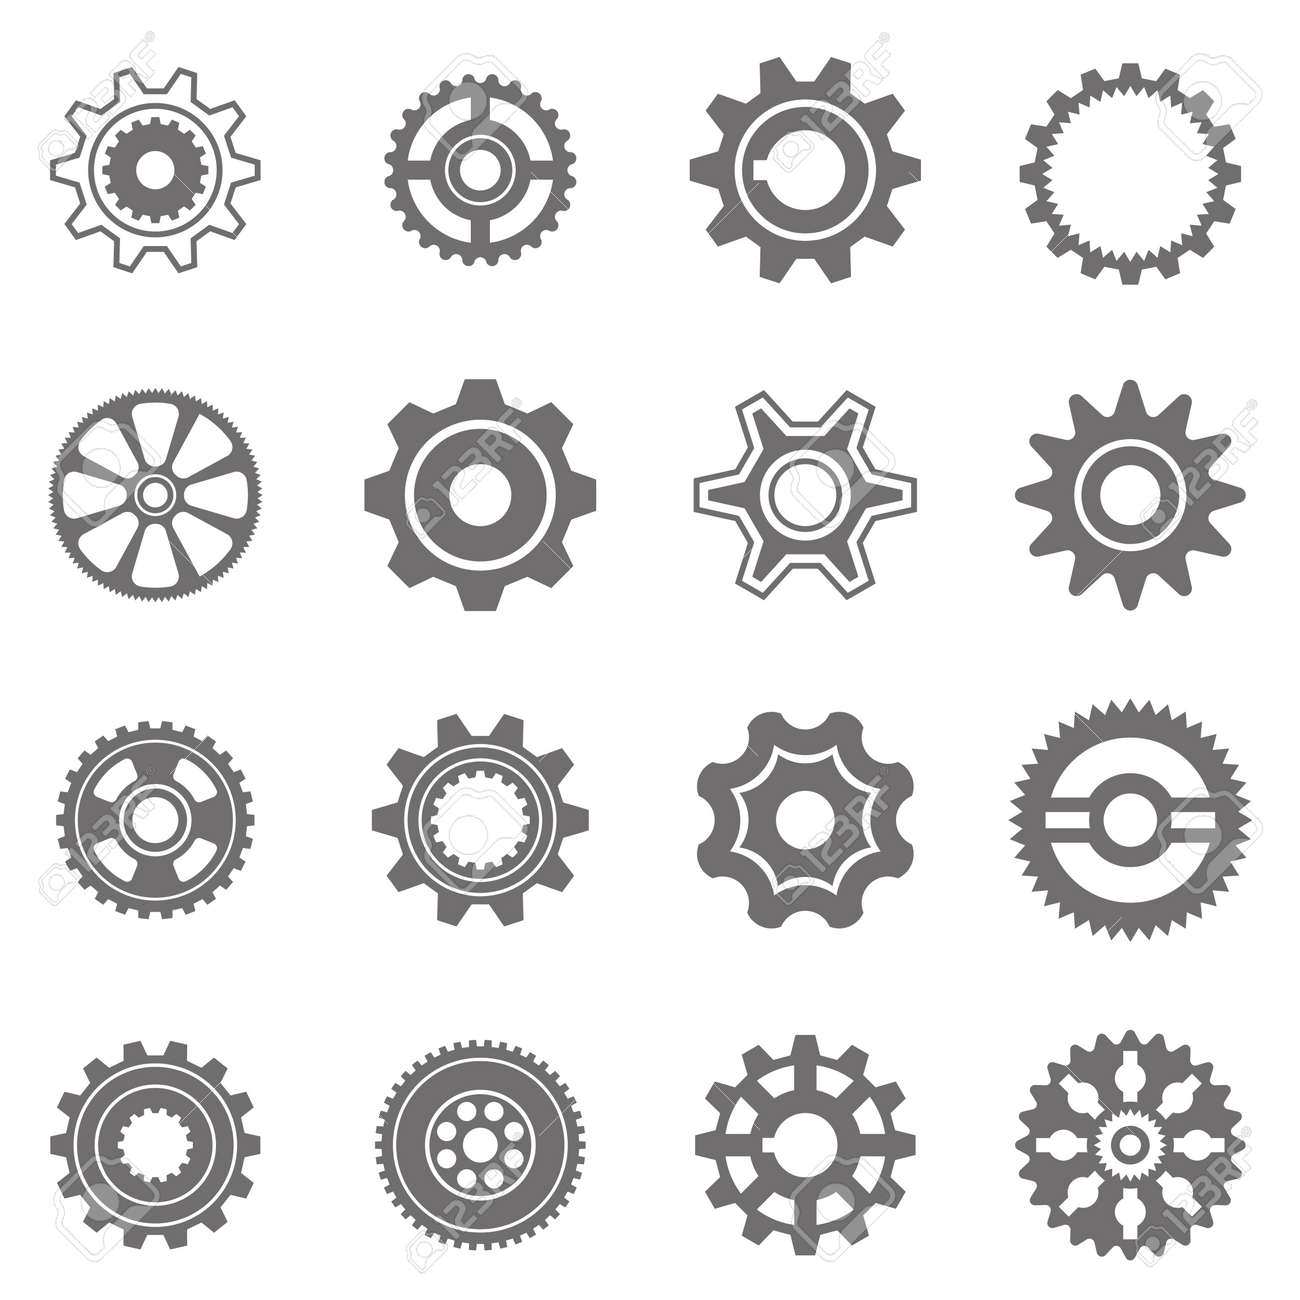 Set of gear wheels in black and white. By changing size, gears can be combined into mechanism. Stock Vector - 54510378